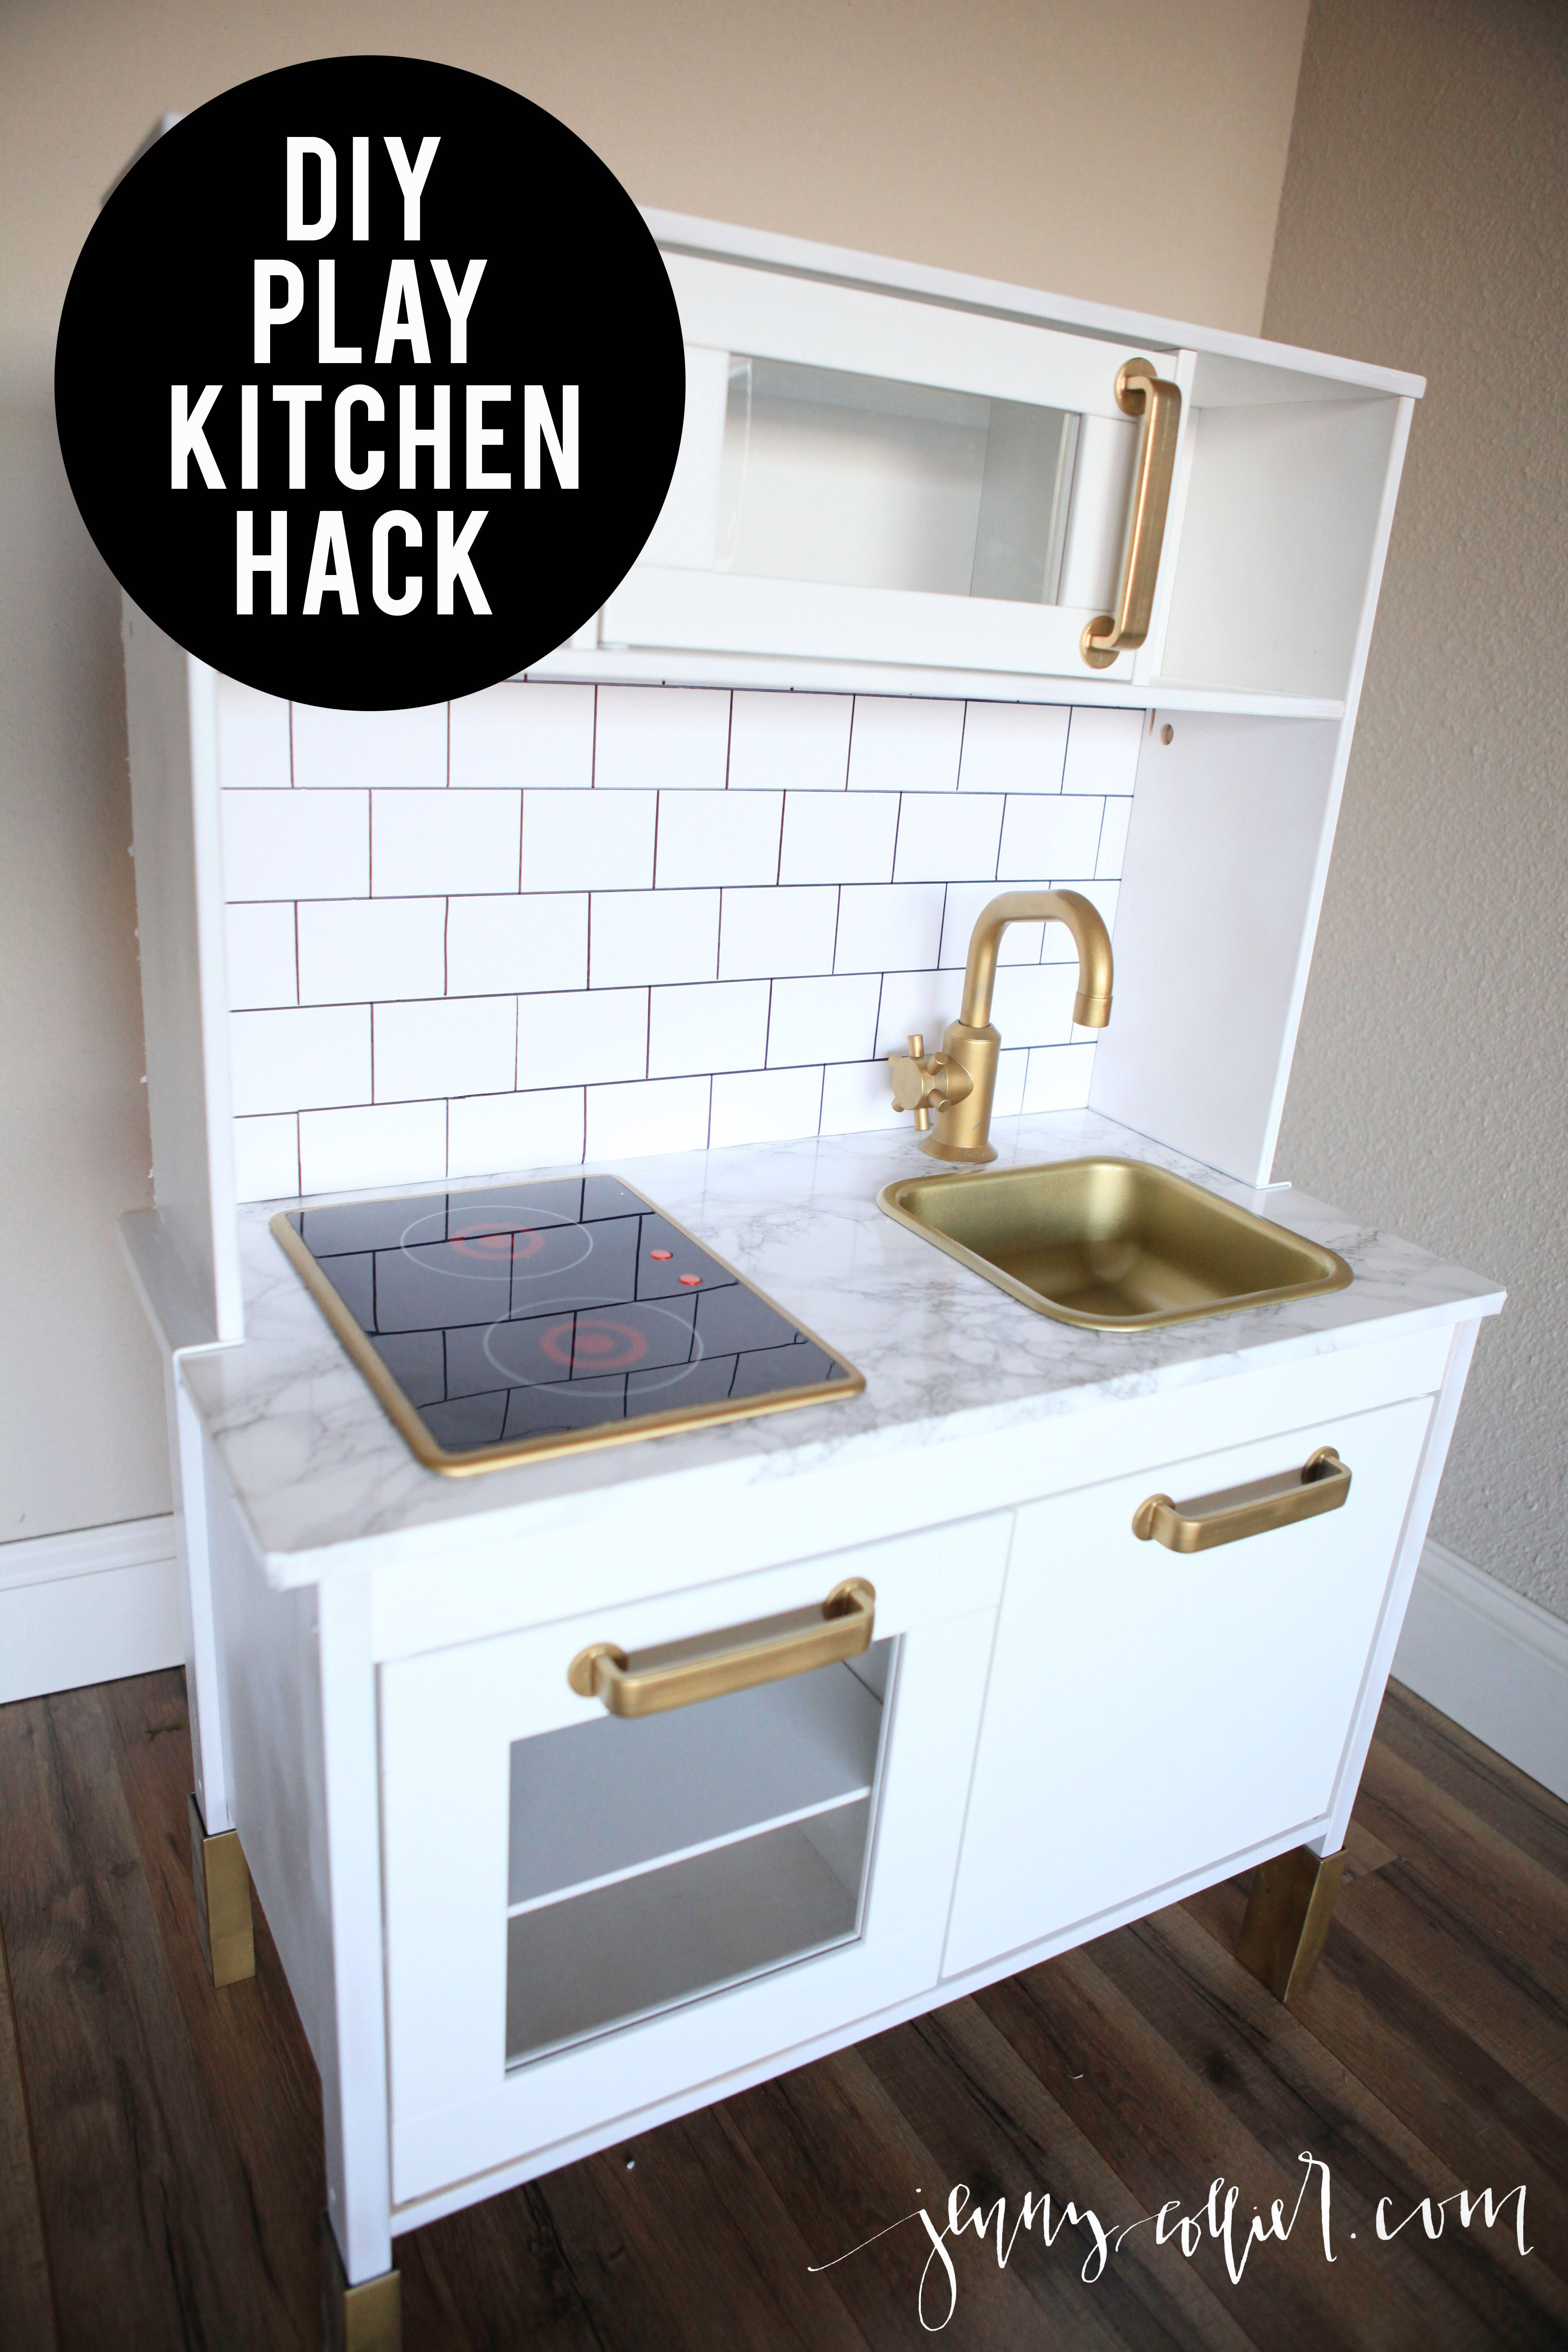 Best ideas about DIY Ikea Kitchen . Save or Pin DIY Play Kitchen Hack for makaila Pinterest Now.